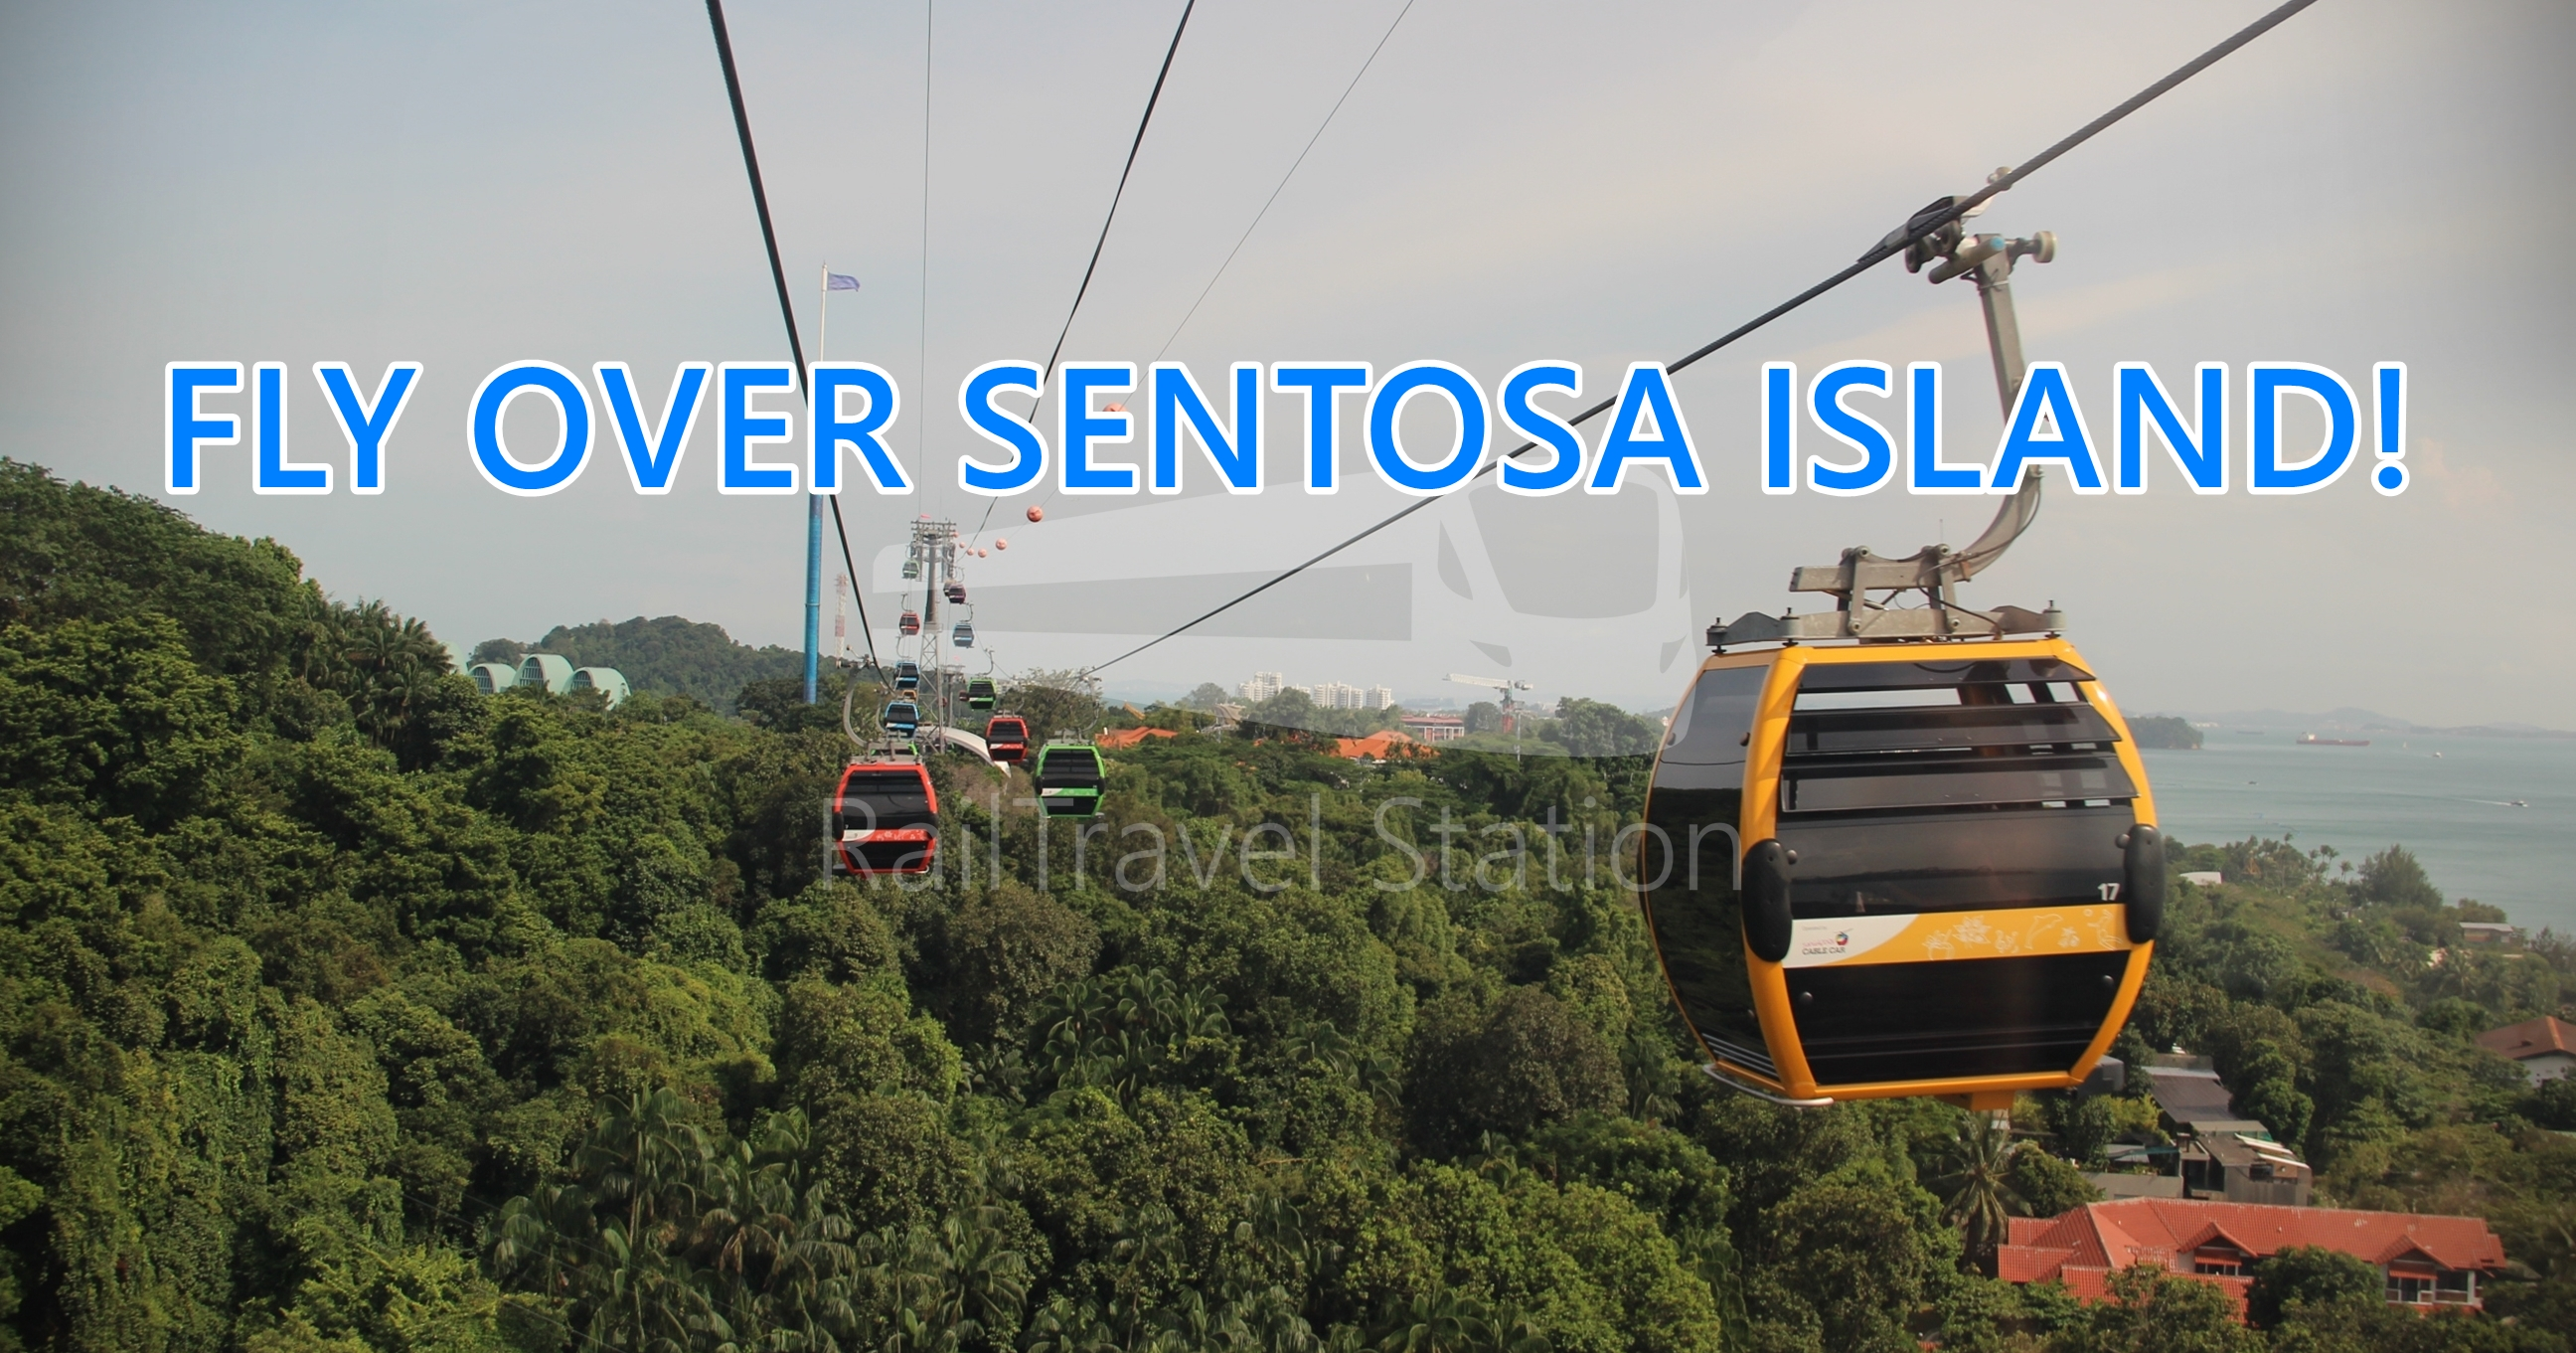 Singapore Cable Car Sentosa Line: The Island Cable Car Line linking Merlion, Imbiah Lookout and Siloso Point